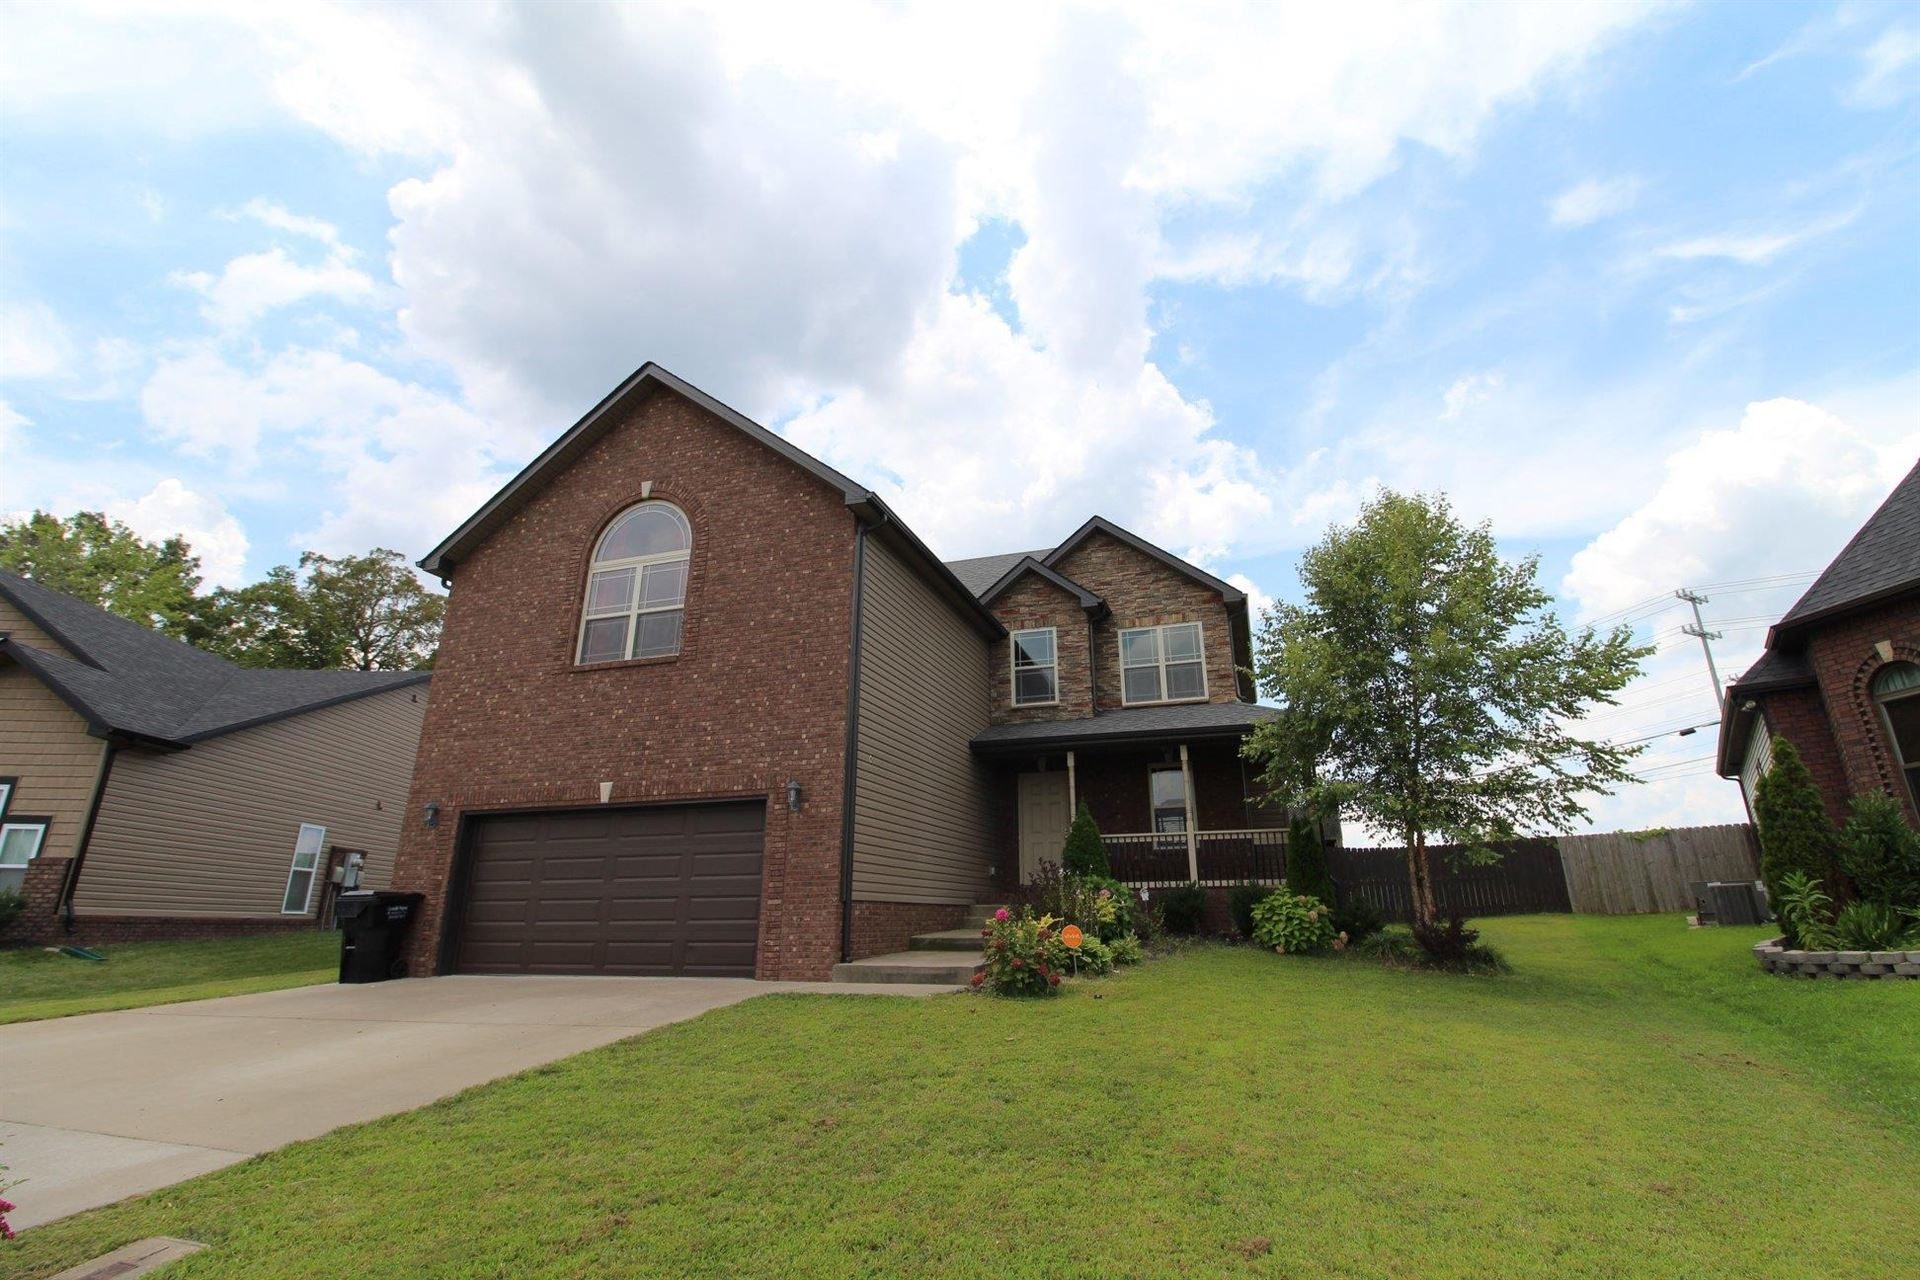 1324 Golden Eagle Way, Clarksville, TN 37040 - MLS#: 2220342